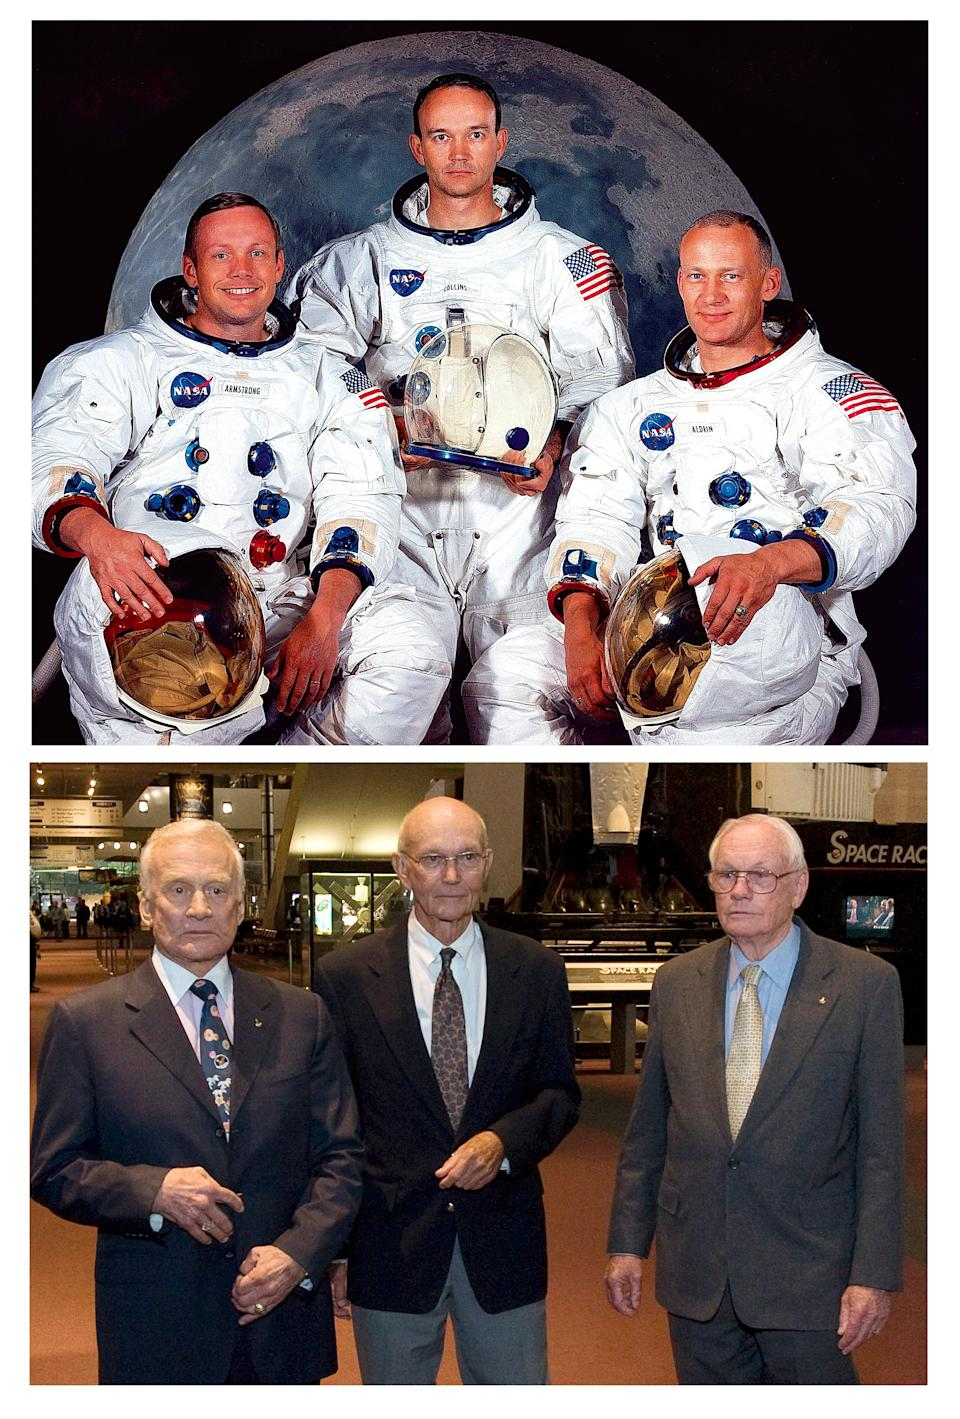 These NASA handout images show at top the Apollo 11 lunar landing astronaut crew from left:  Neil A. Armstrong, Michael Collins, and Edwin E.